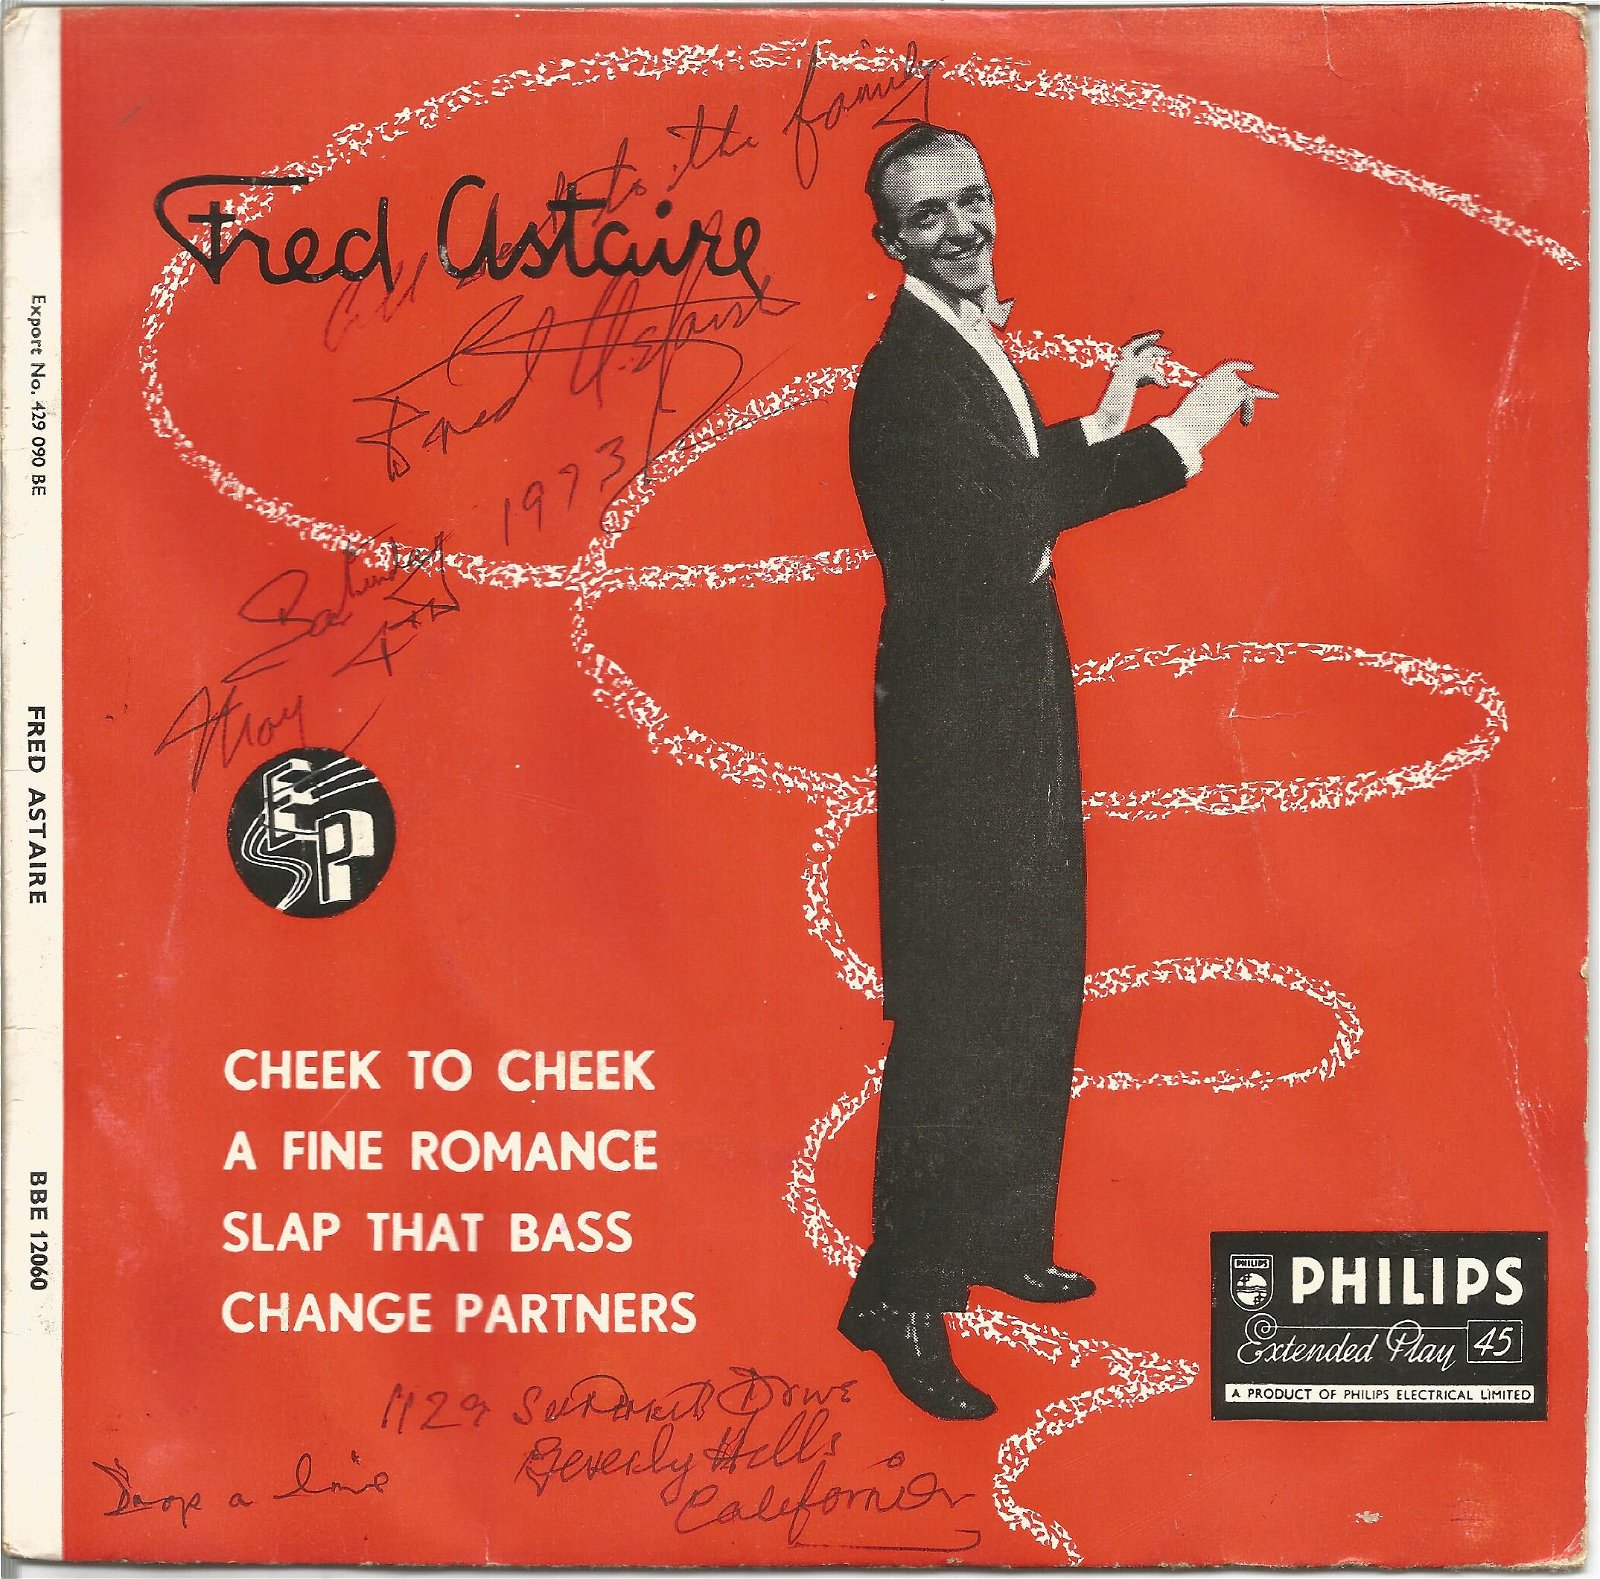 Fred Astaire signed 45rpm record sleeve. May 10, 1899 -